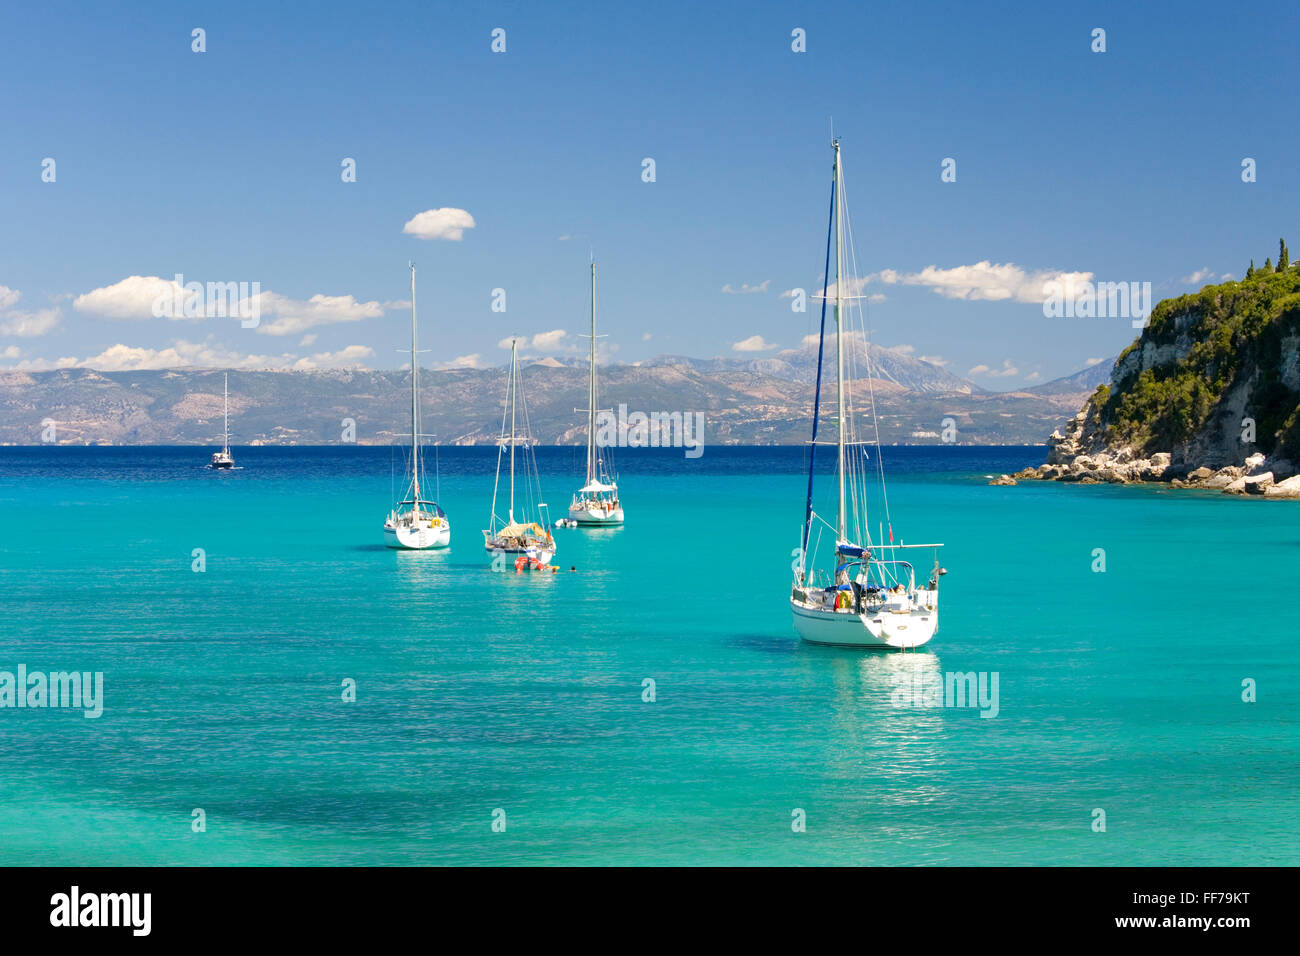 Lakka, Paxos, Ionian Islands, Greece. View across the clear turquoise waters of Lakka Bay, yachts anchored offshore. - Stock Image